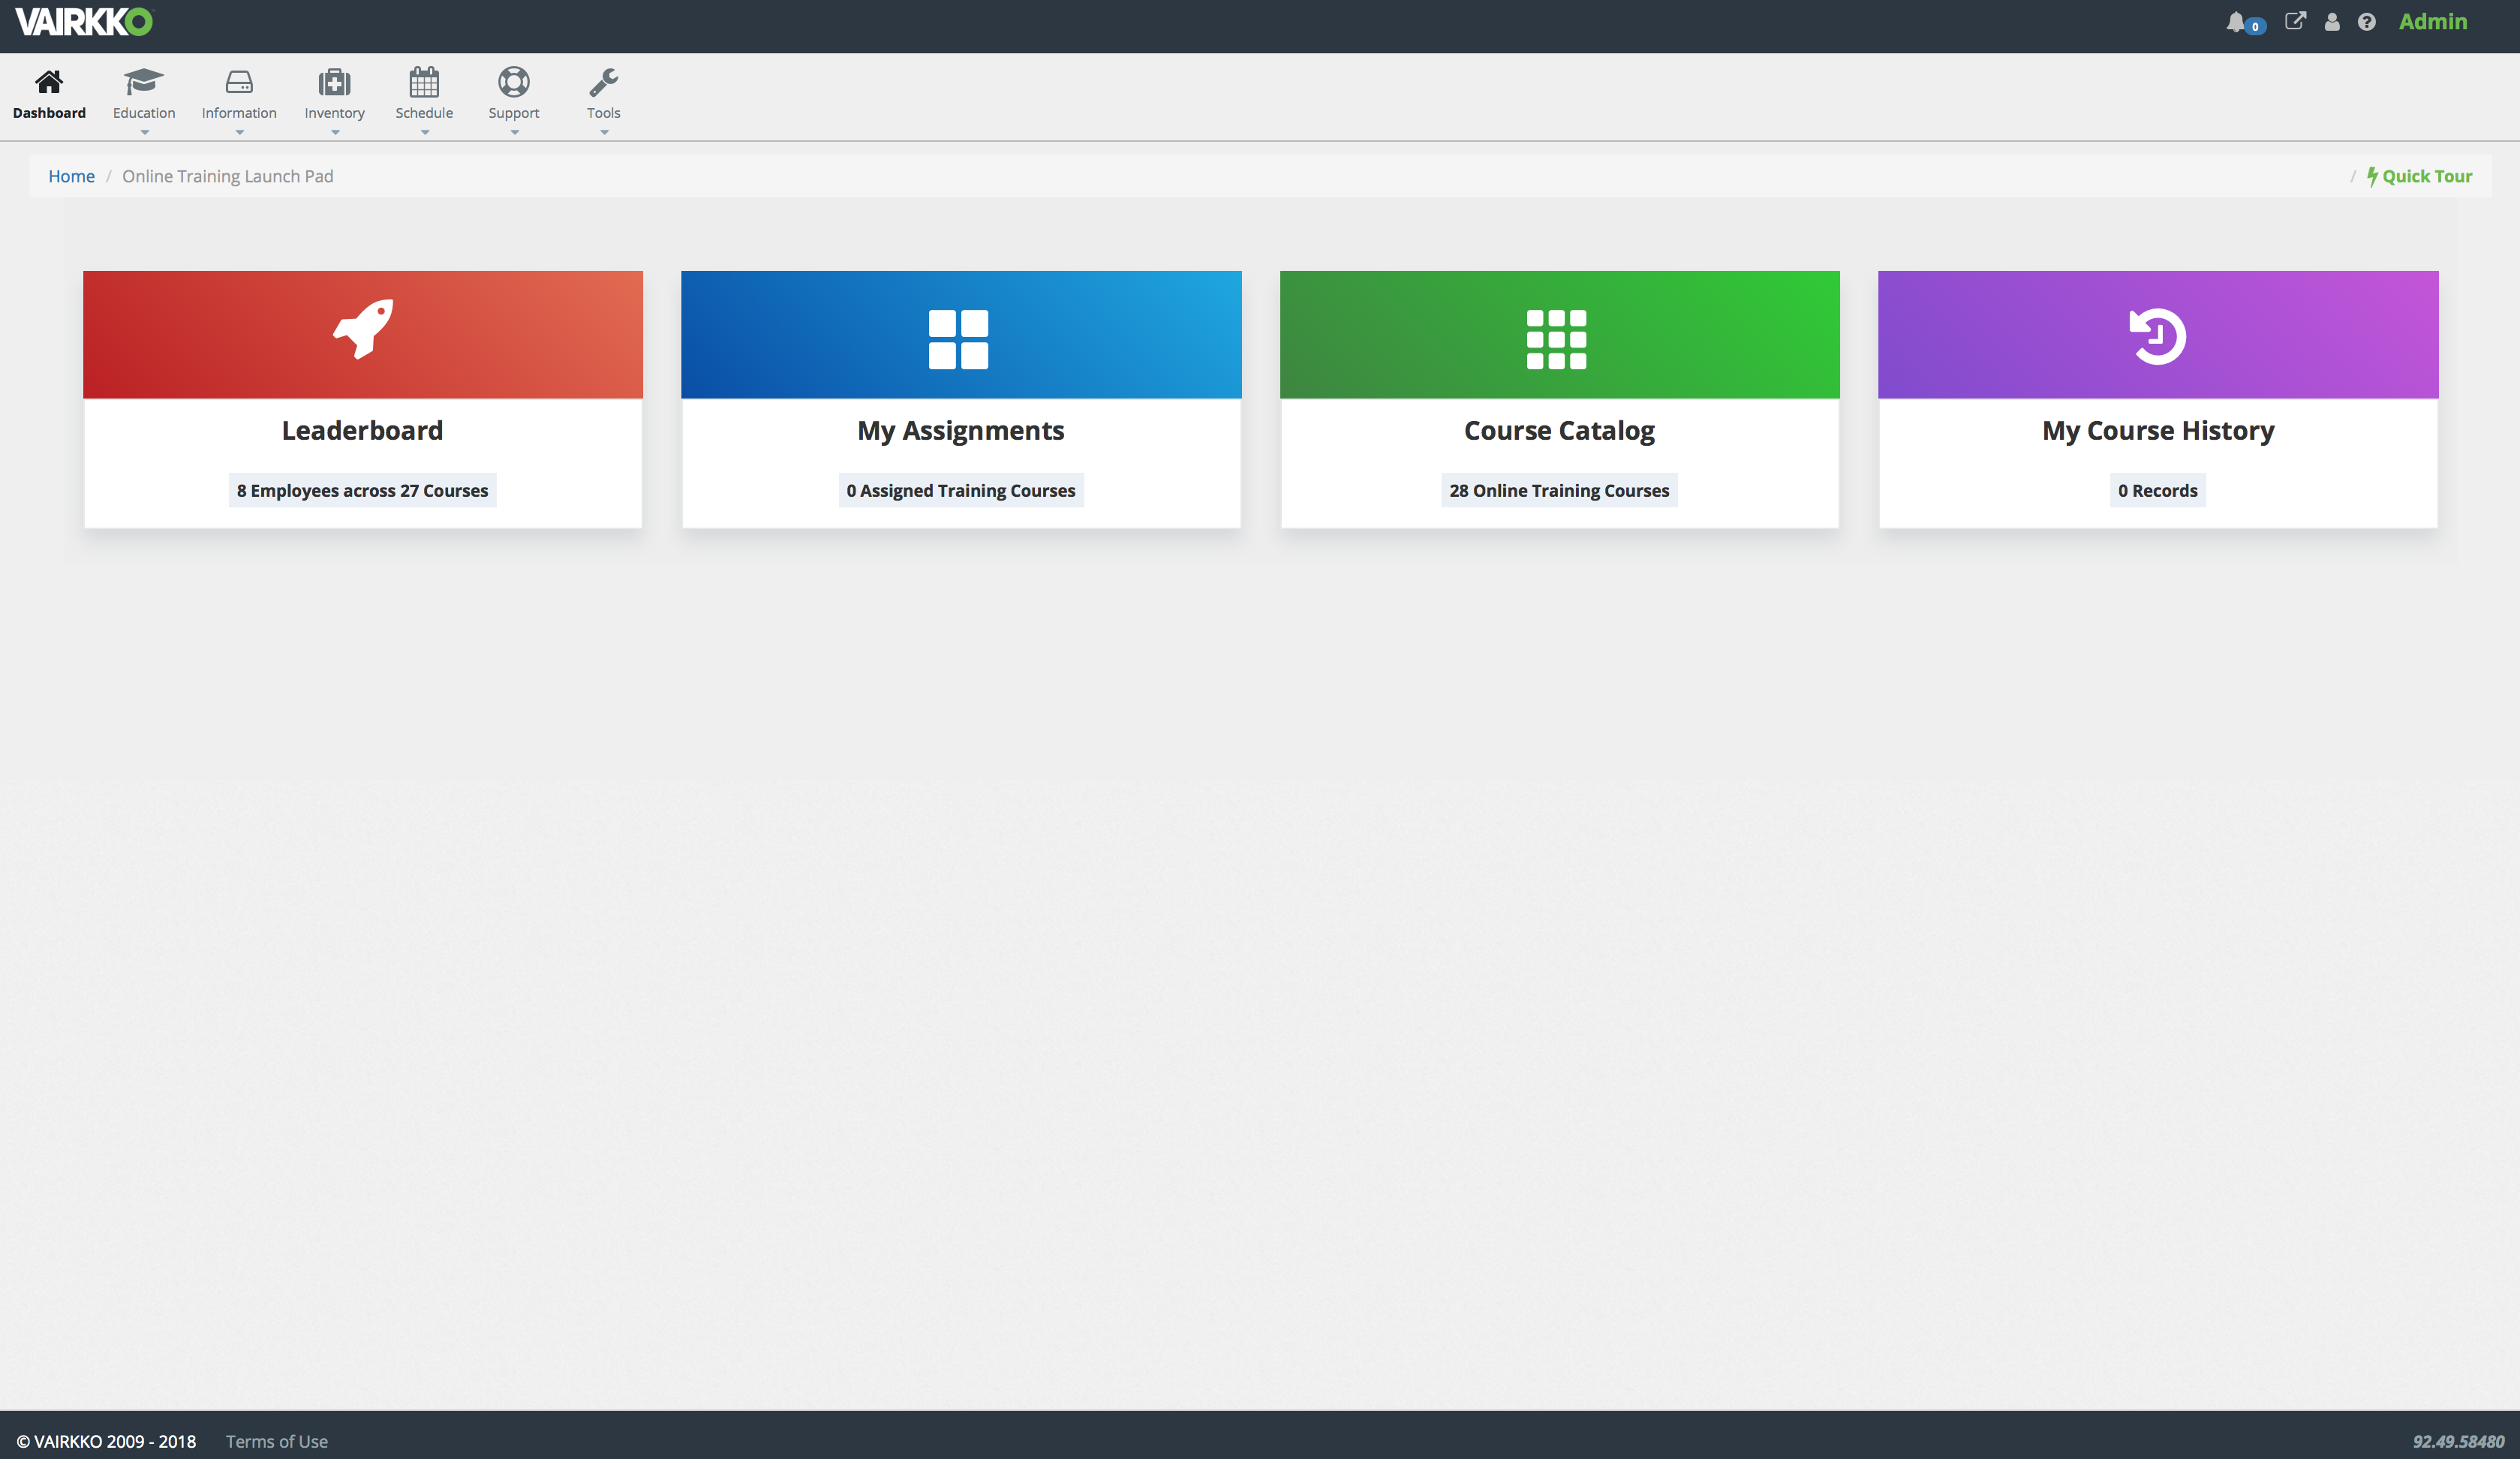 User-side e-Learning control panel for navigating between modules.